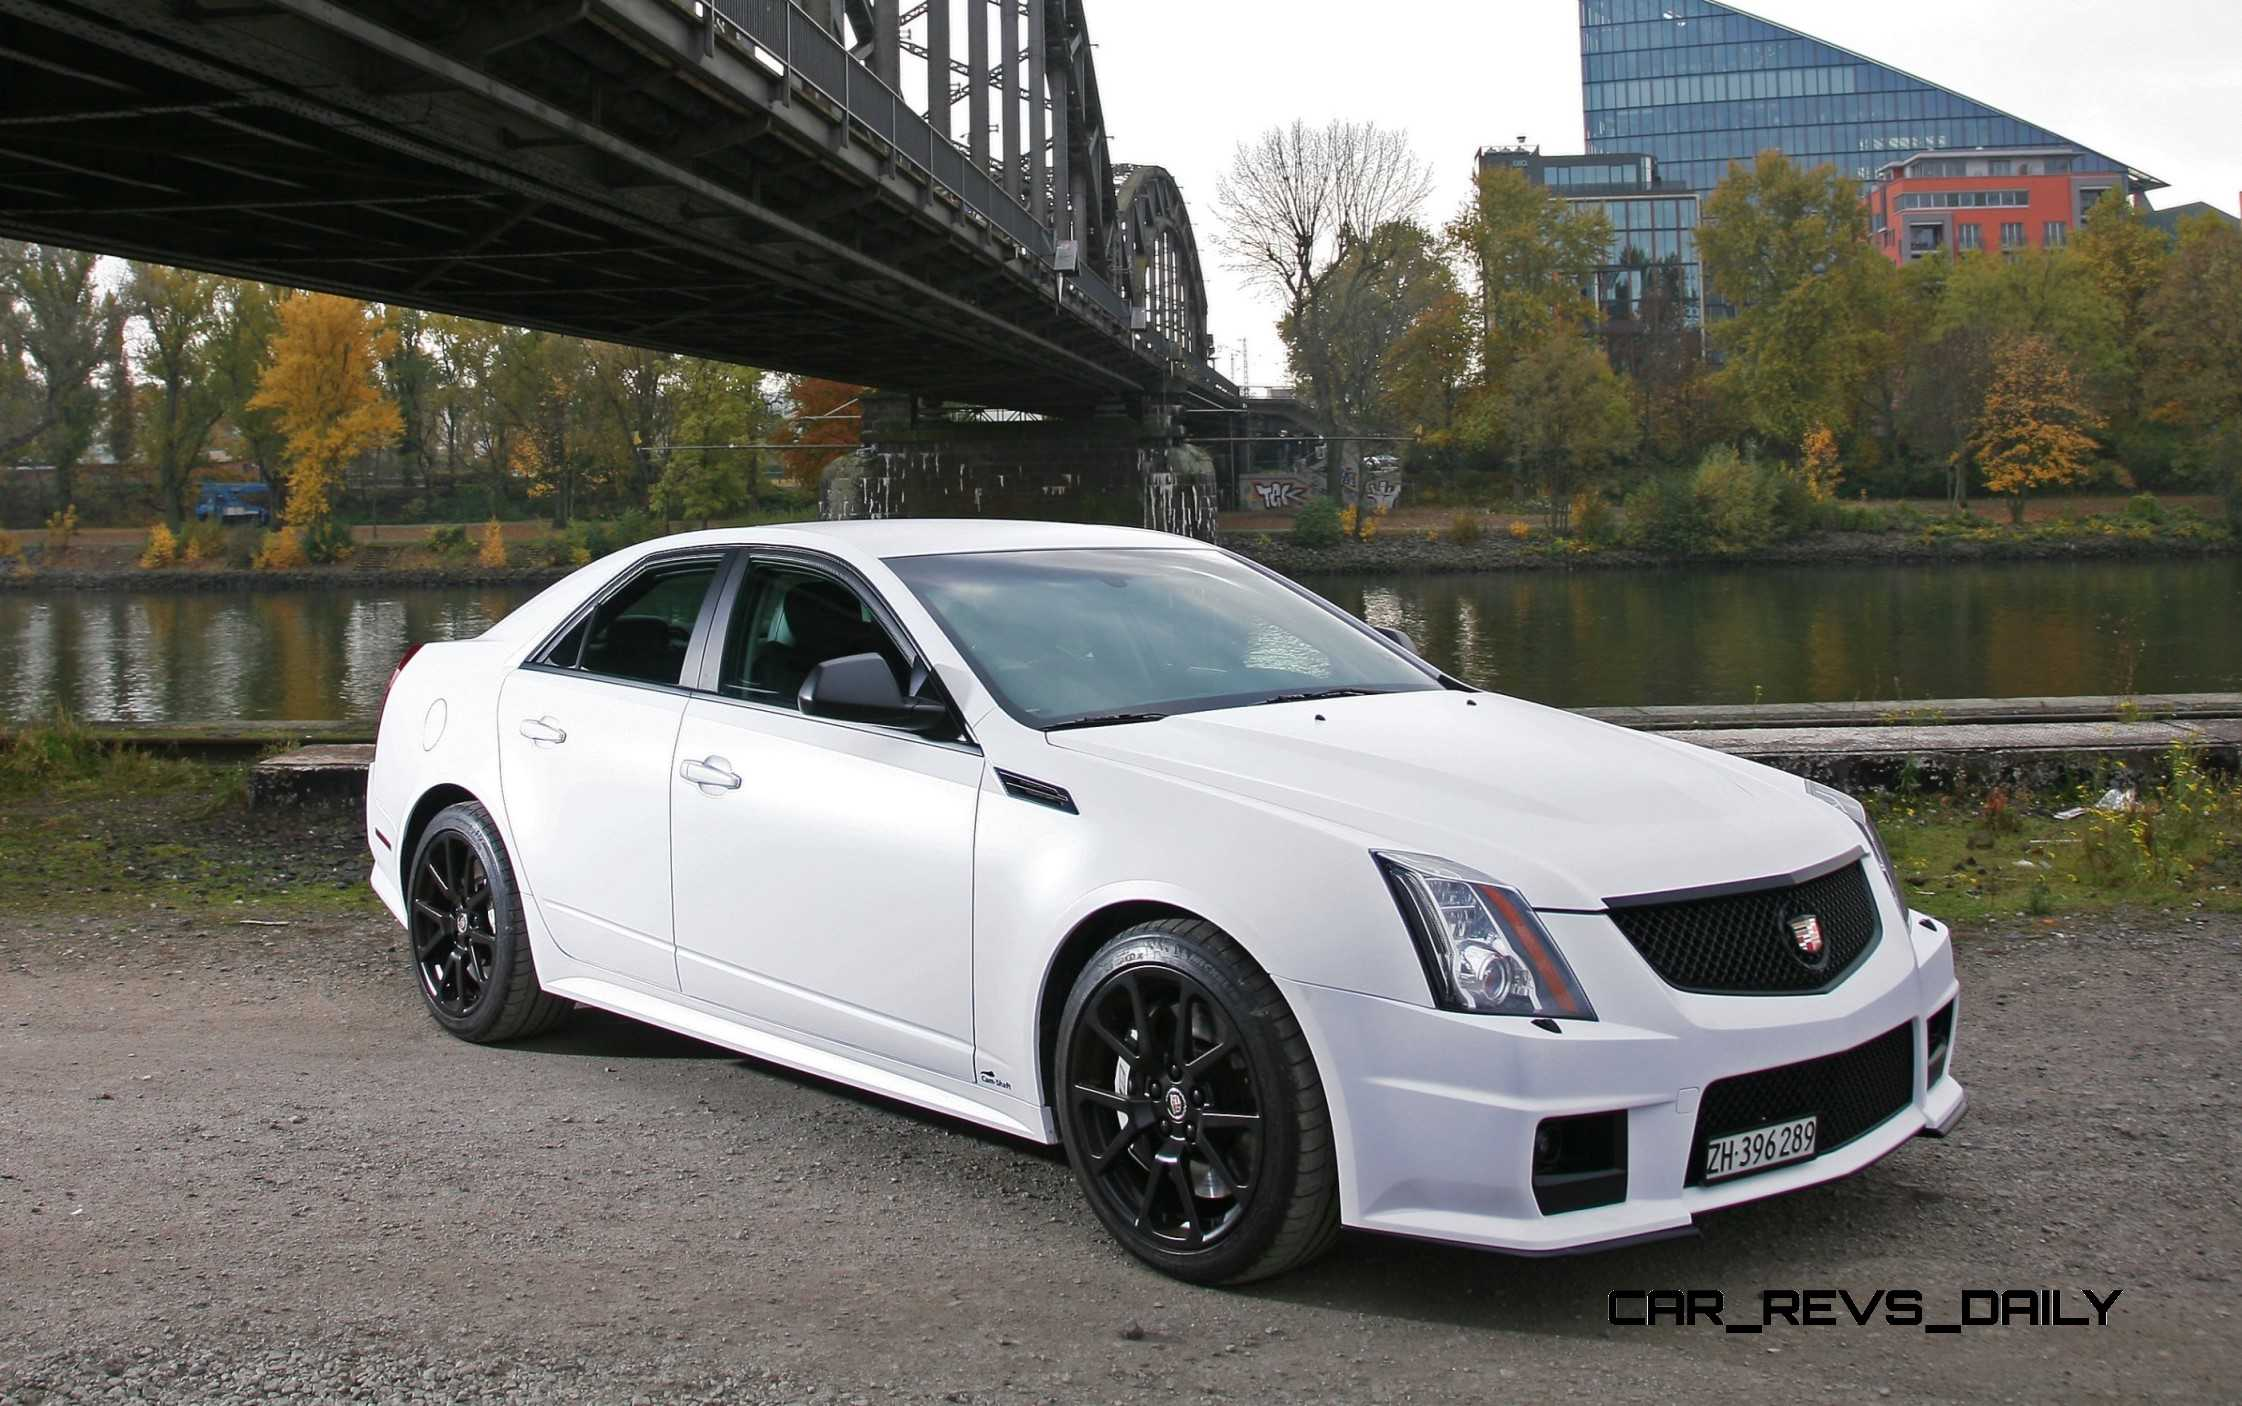 Cadillac Cts-V Wagon For Sale >> 2012 Cadillac CTS-V with Satin White Wrap by CAMSHAFT